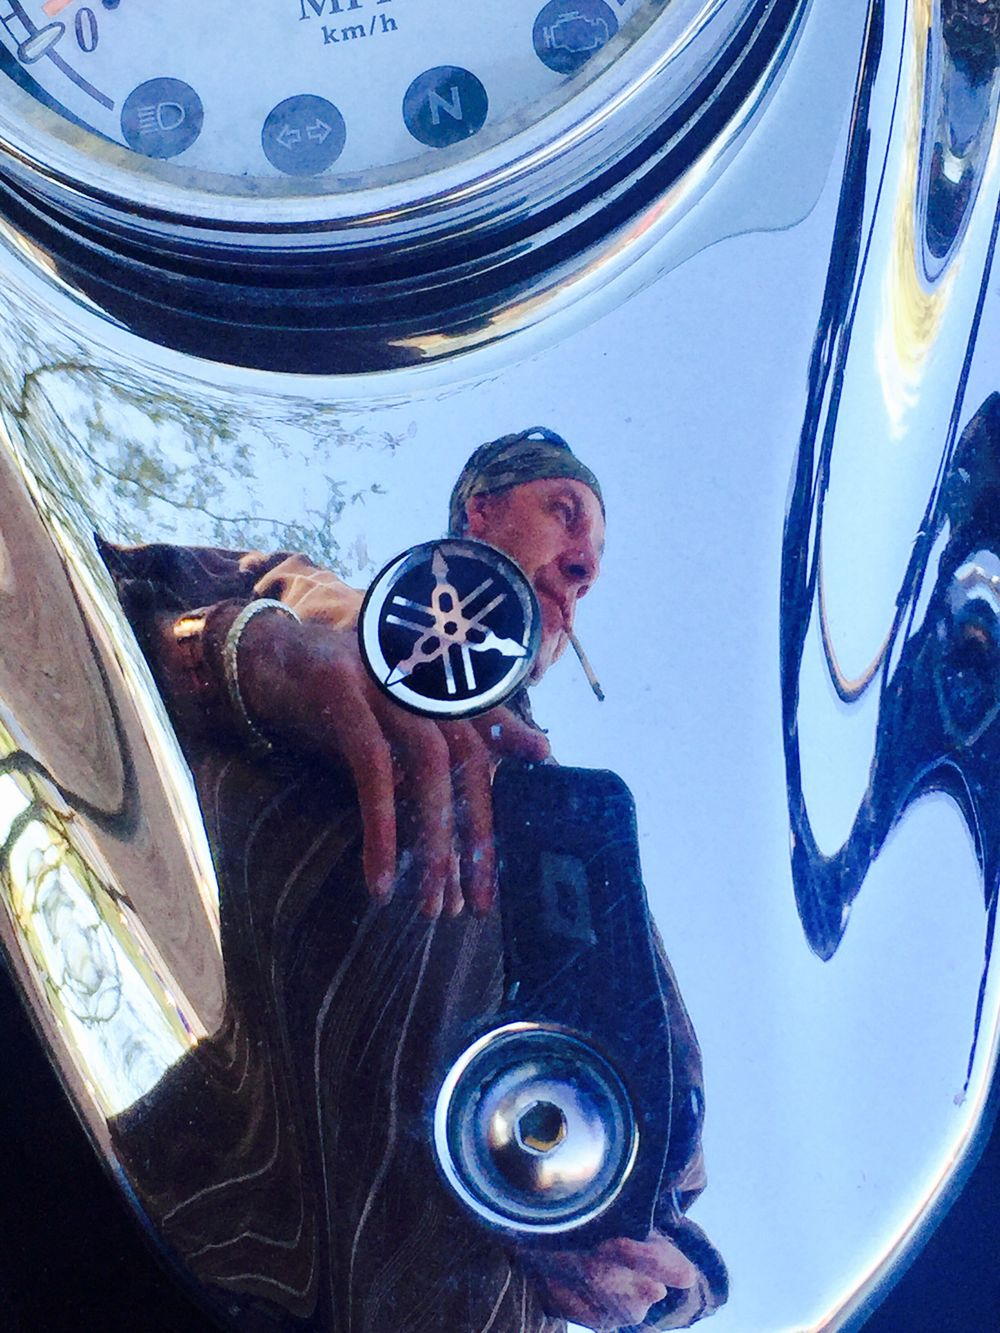 Reflection Real People One Person Men Lifestyles Portrait Leisure Activity Standing Indoors  One Man Only Technology Day Only Men Adult People Reflection Refelctive Motorcycles Mototbike Chrome Yamaha Vstar650 Vstar